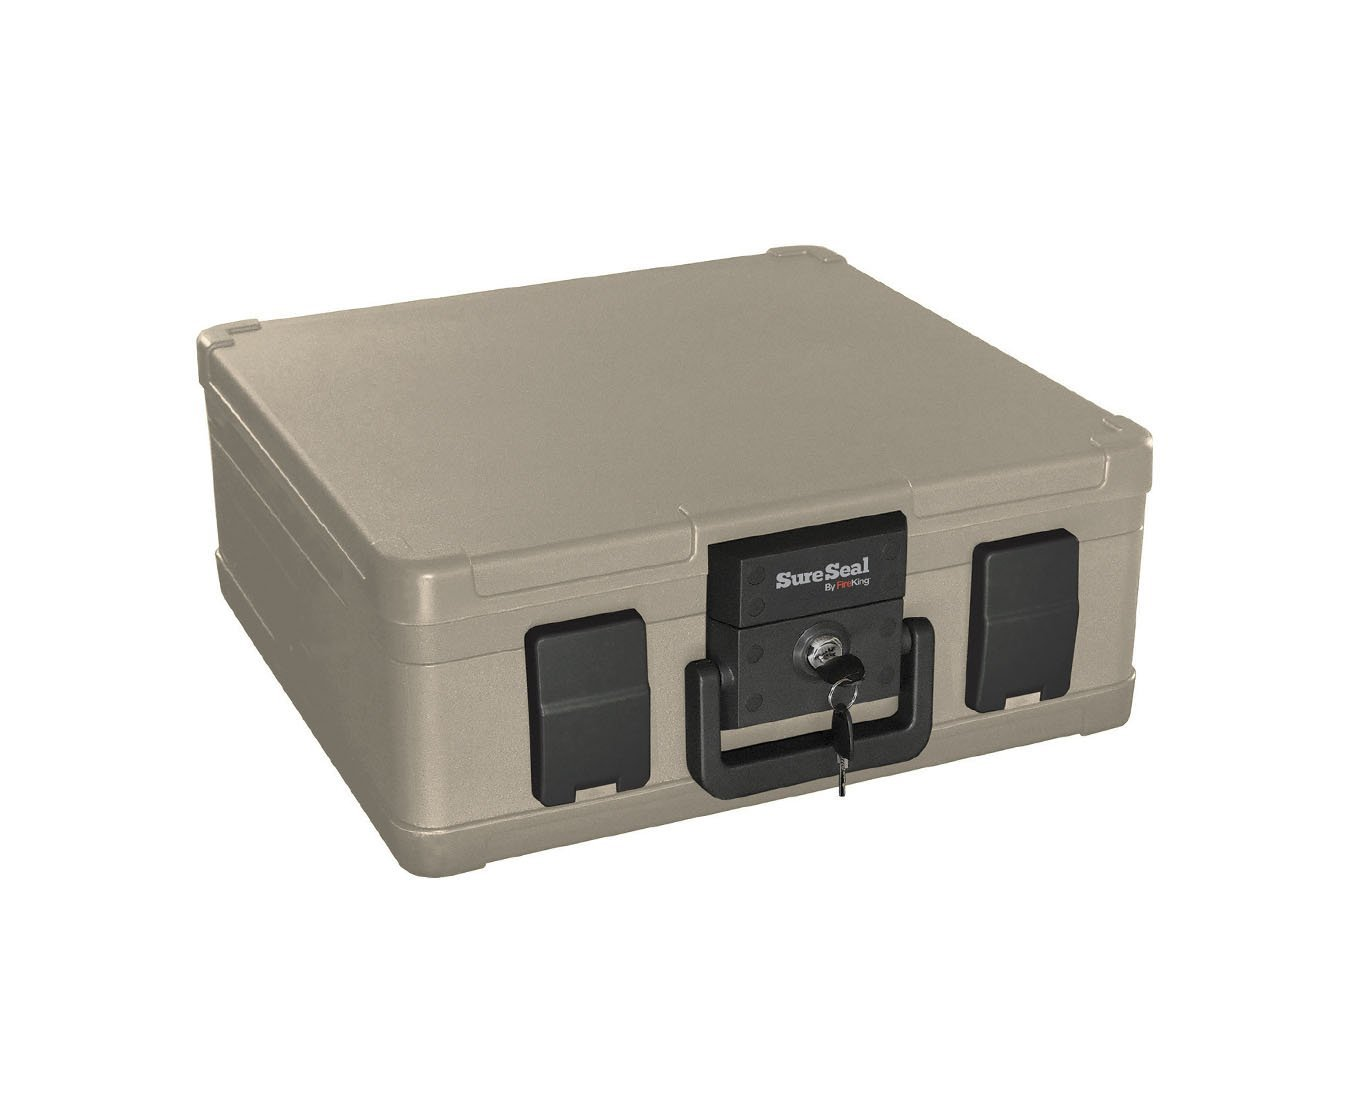 Fireproof Safes & Waterproof Chests - FireKing SS103 SureSeal Water & Fire Chest